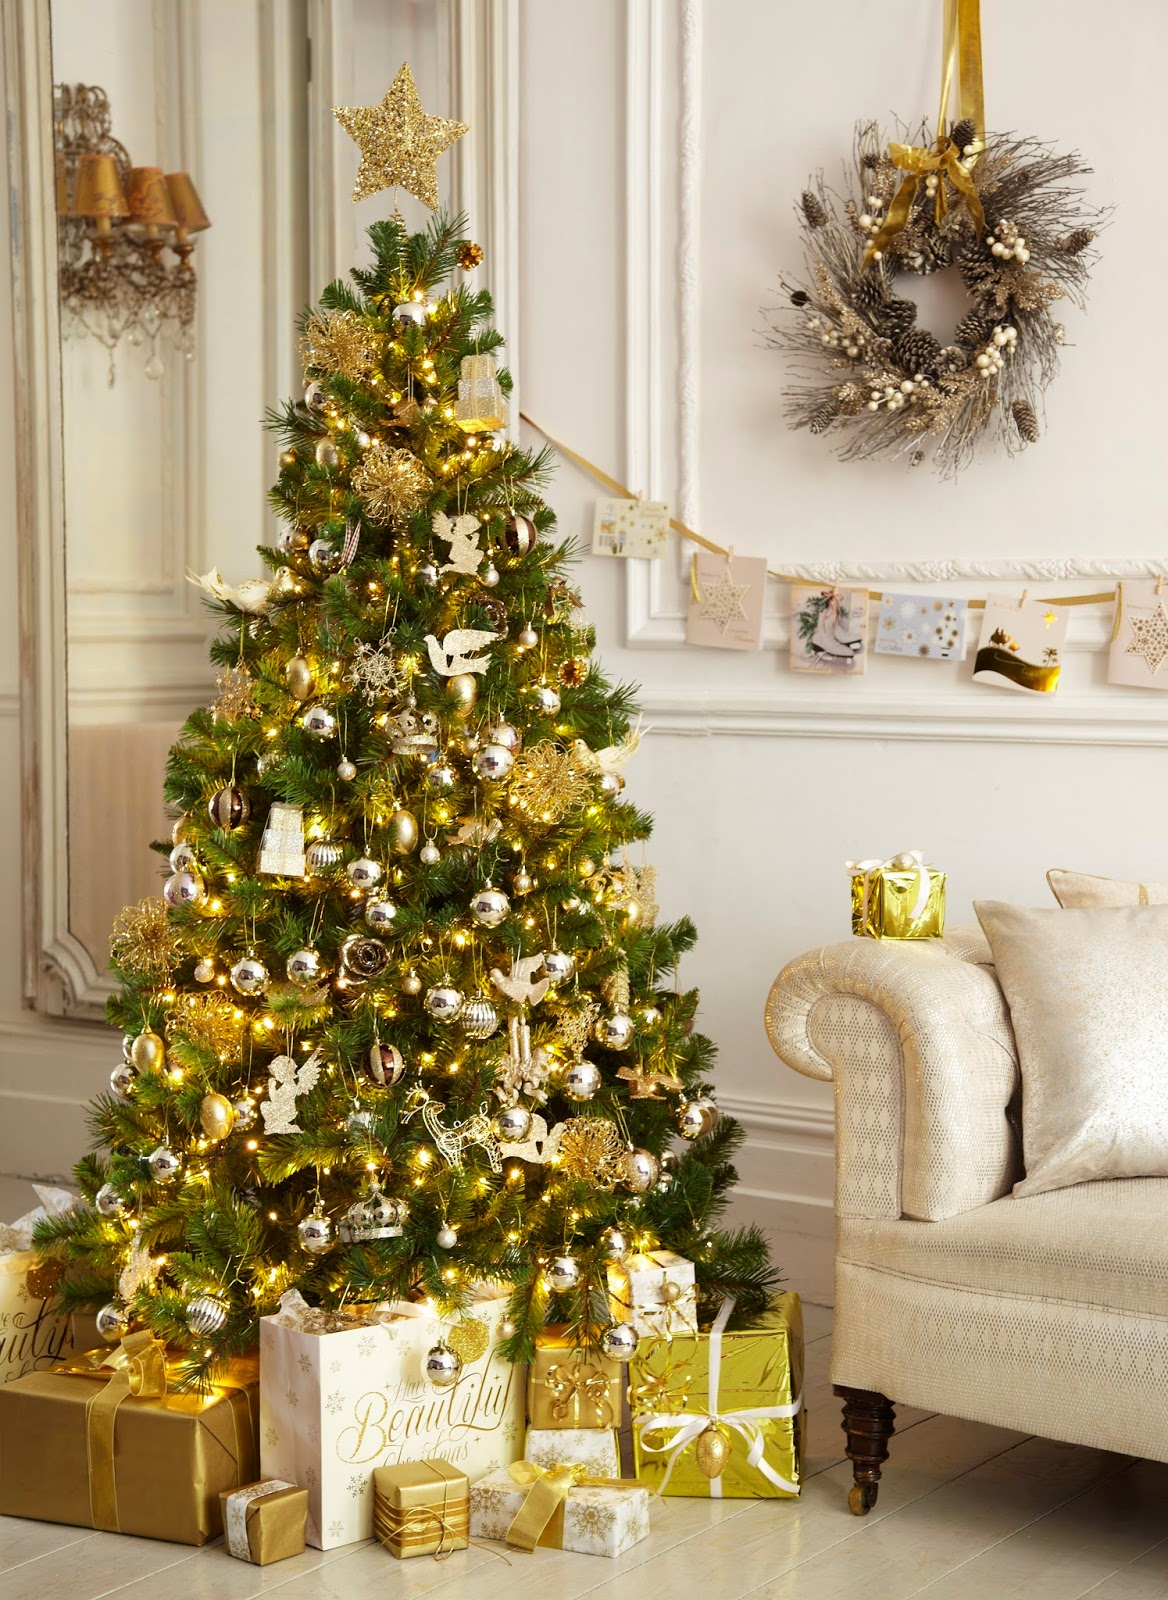 30 Gold Christmas Decorations Ideas For Home Flawssy